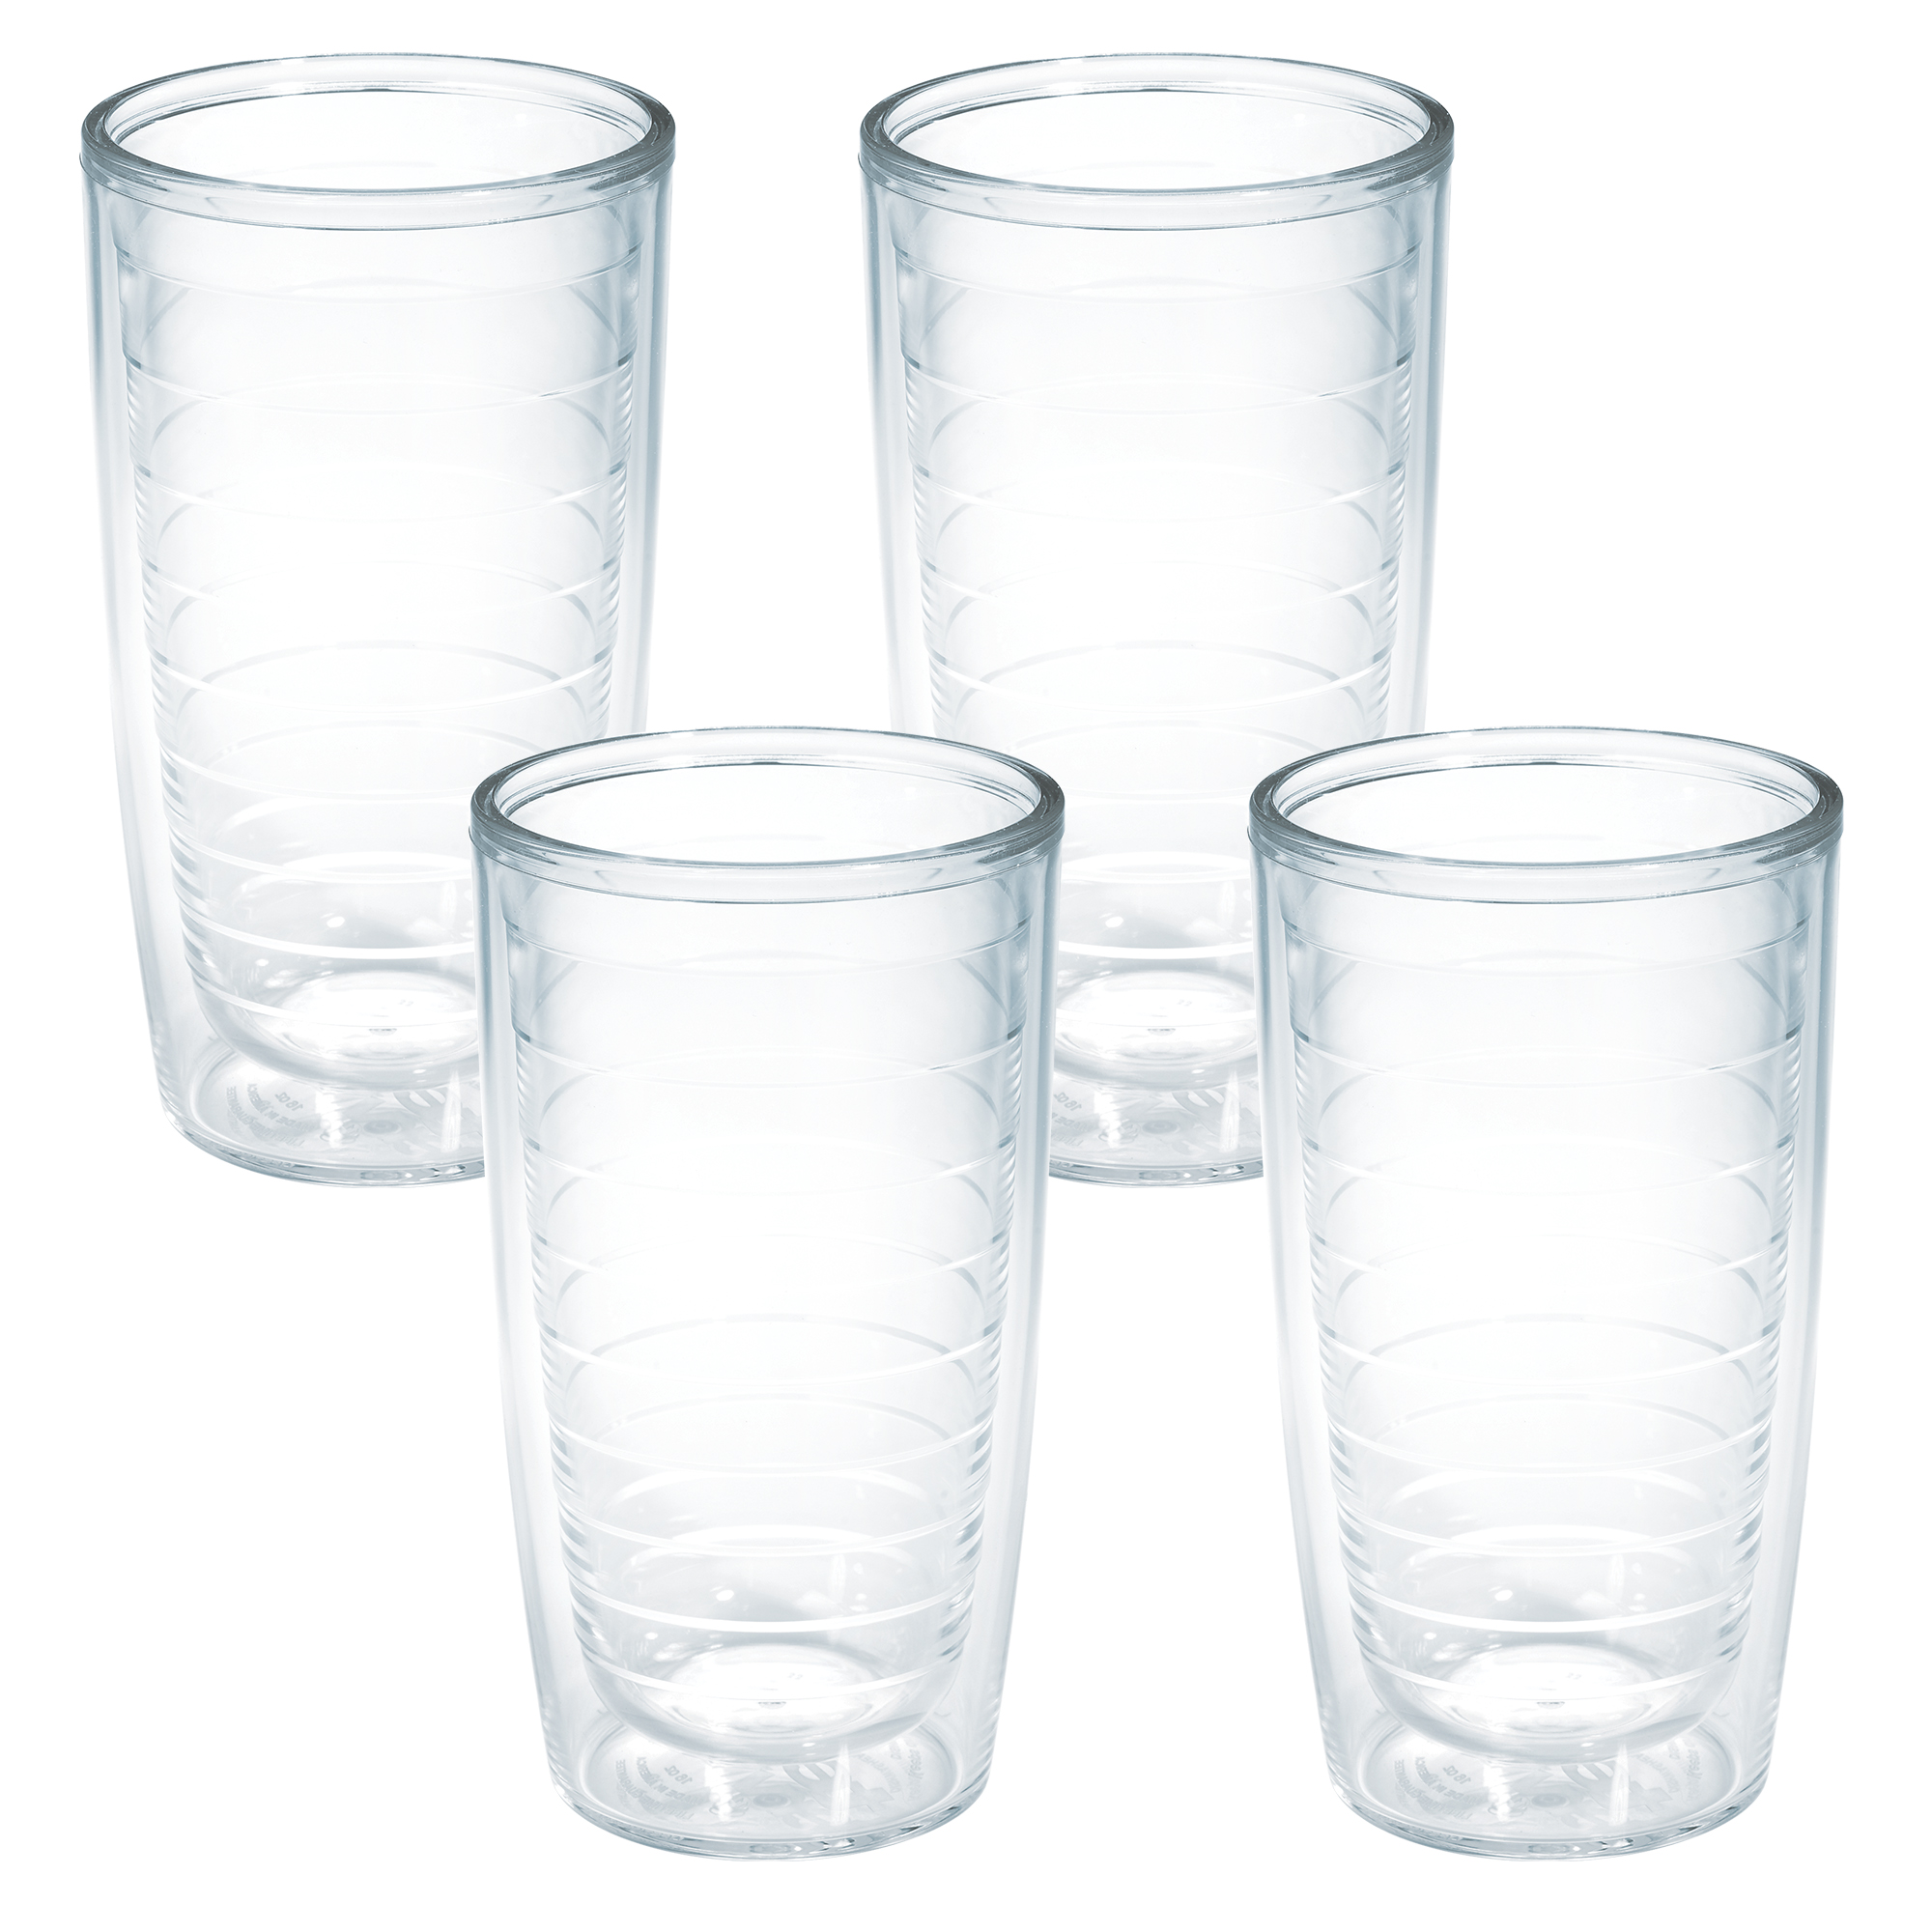 16 oz Tritan Assorted Tervis 1037267 Clear /& Colorful Insulated Tumbler 4 Pack Boxed